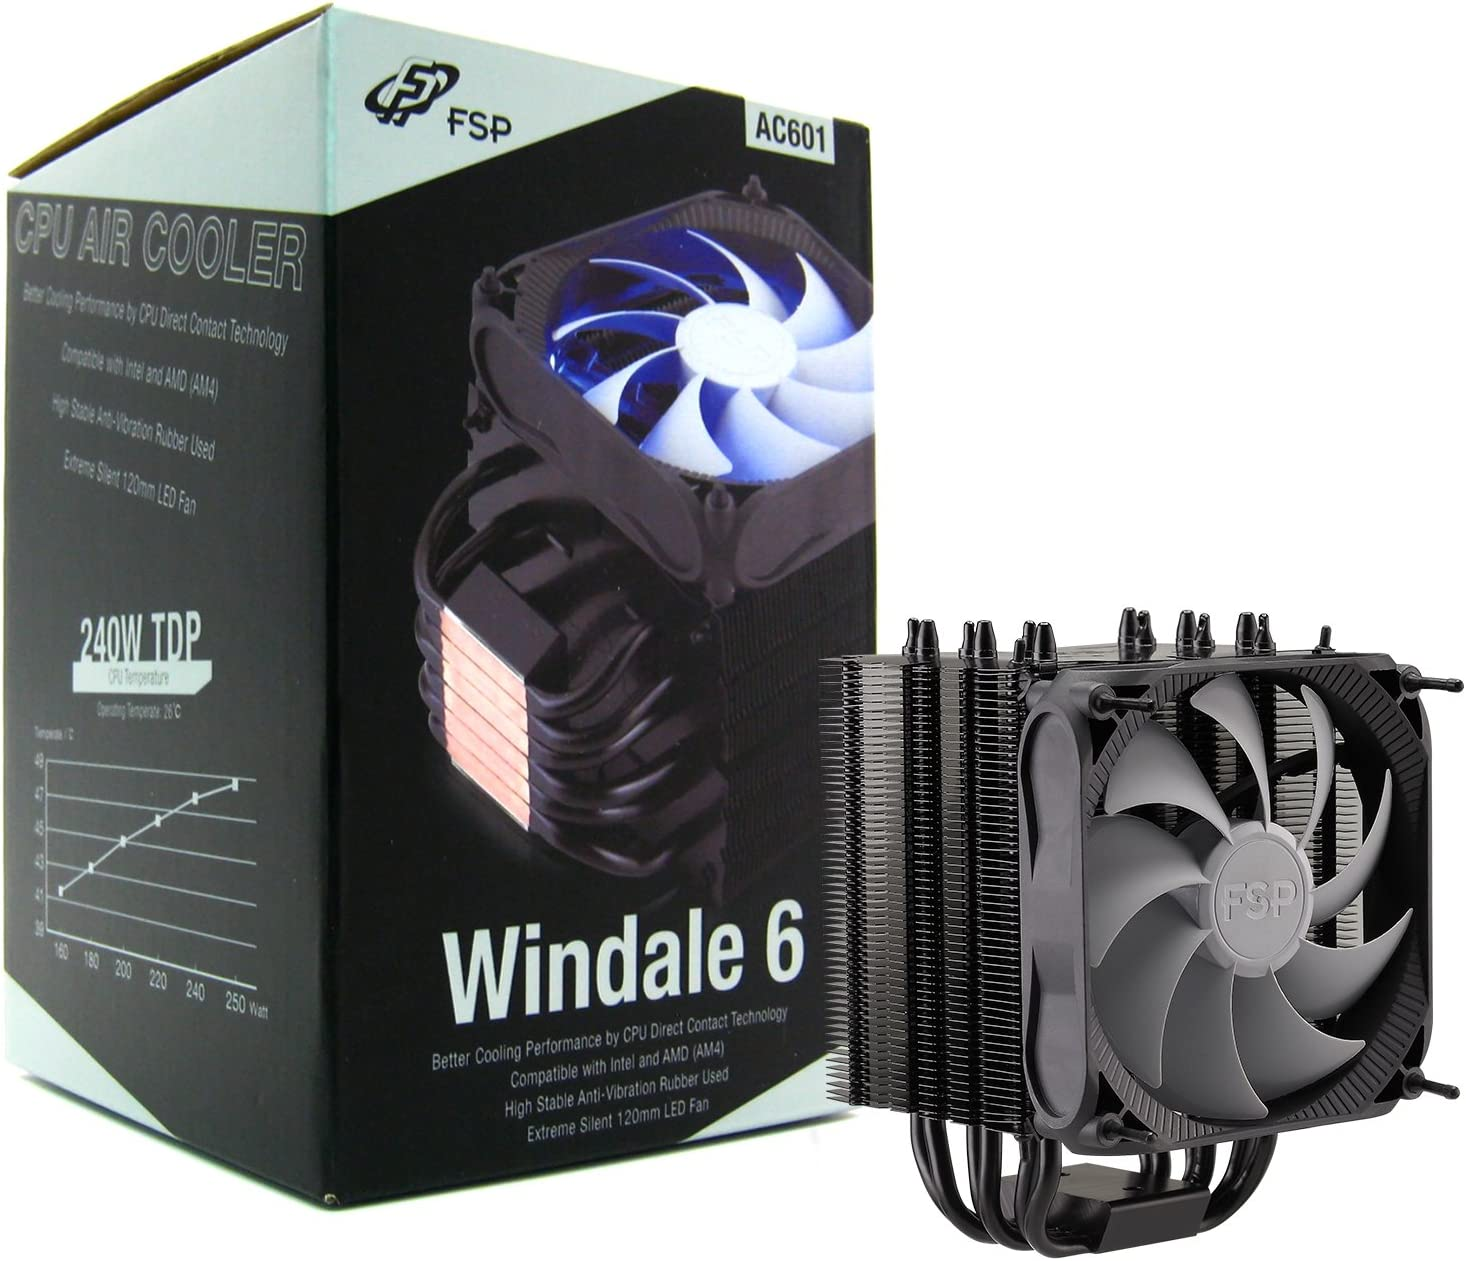 FSP Windale 6 CPU Cooler 6 Direct Contact Heatpipes 6mm Black Aluminum Alloy with 120mm Blue LED PWM Fan (AC601)